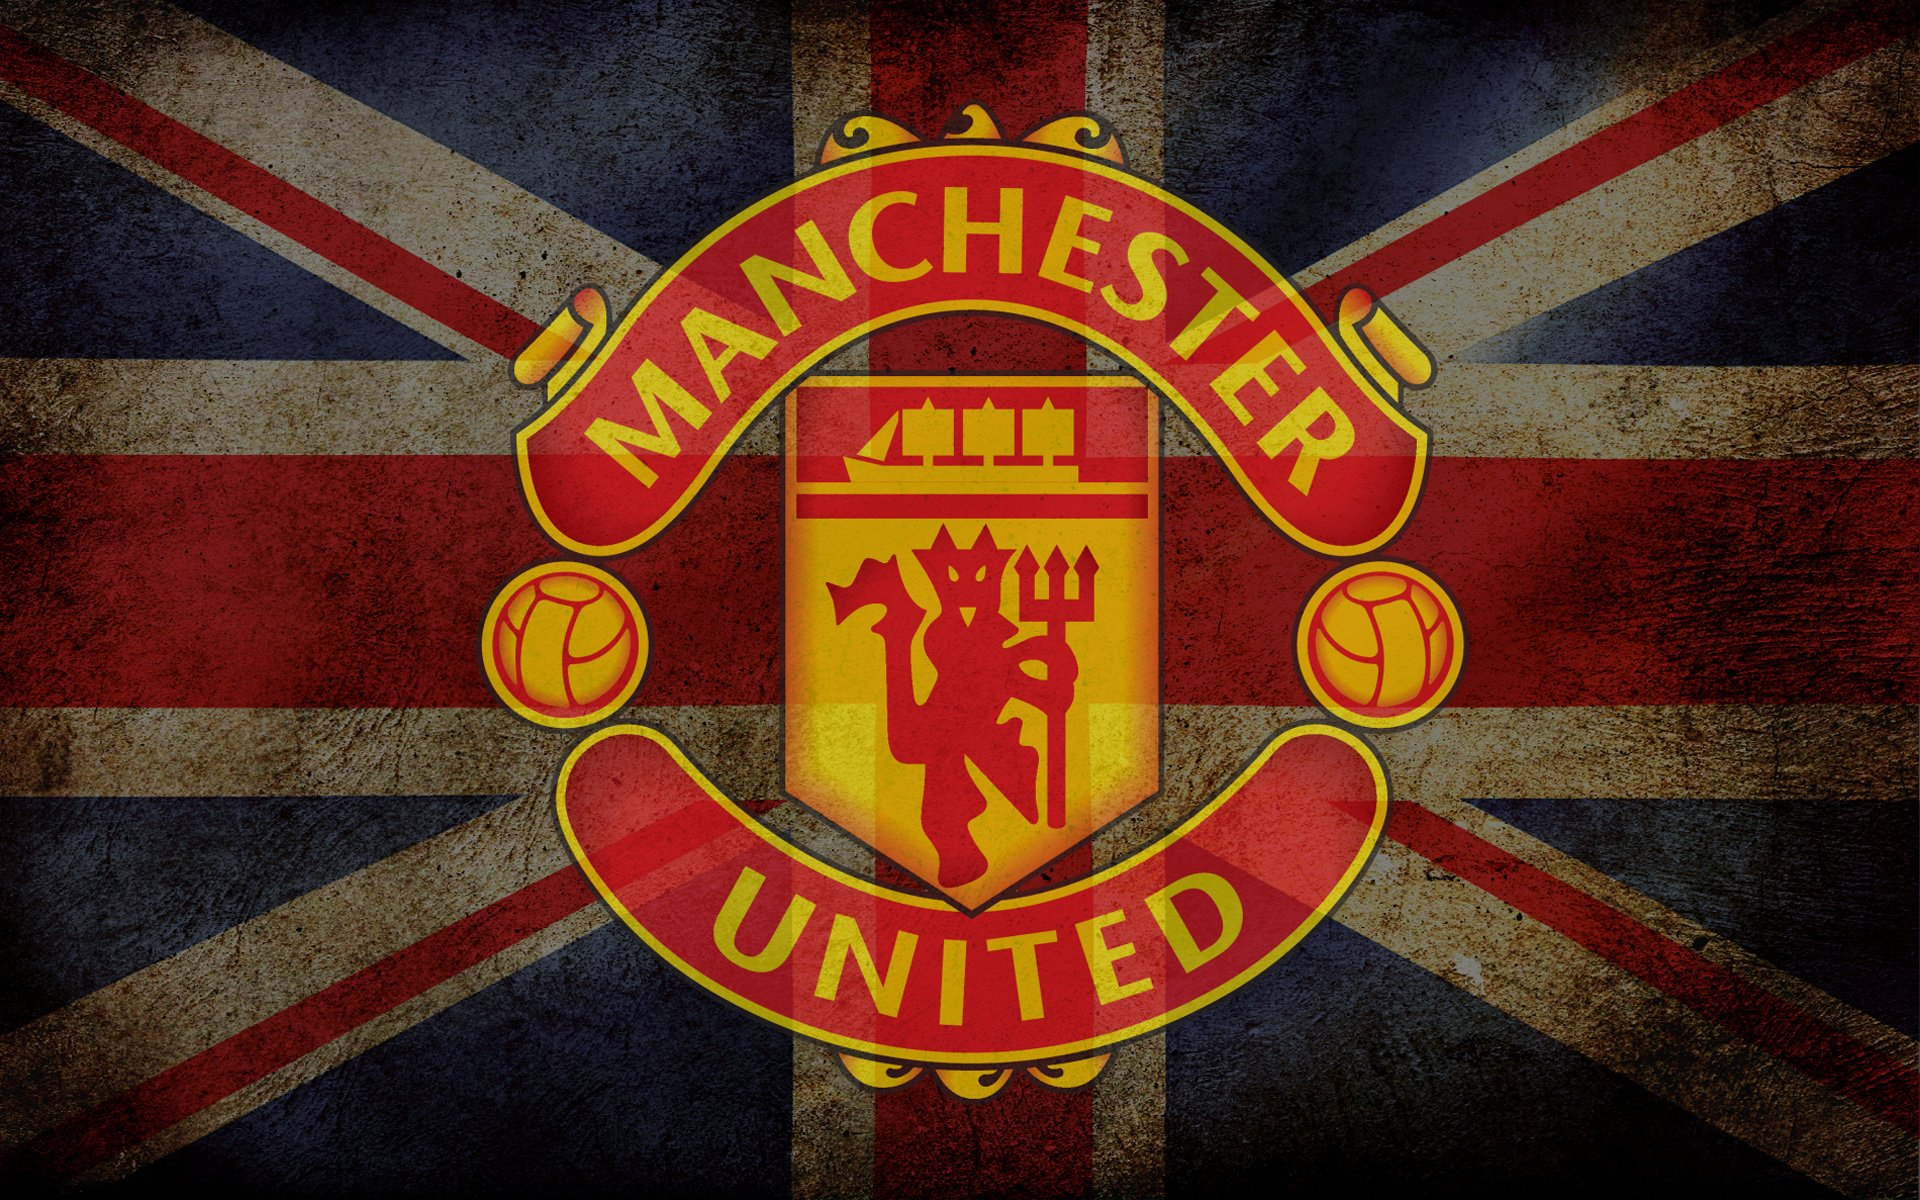 Manchester United Logo Hd Wallpaper Background Image 1920x1200 Id 969533 Wallpaper Abyss